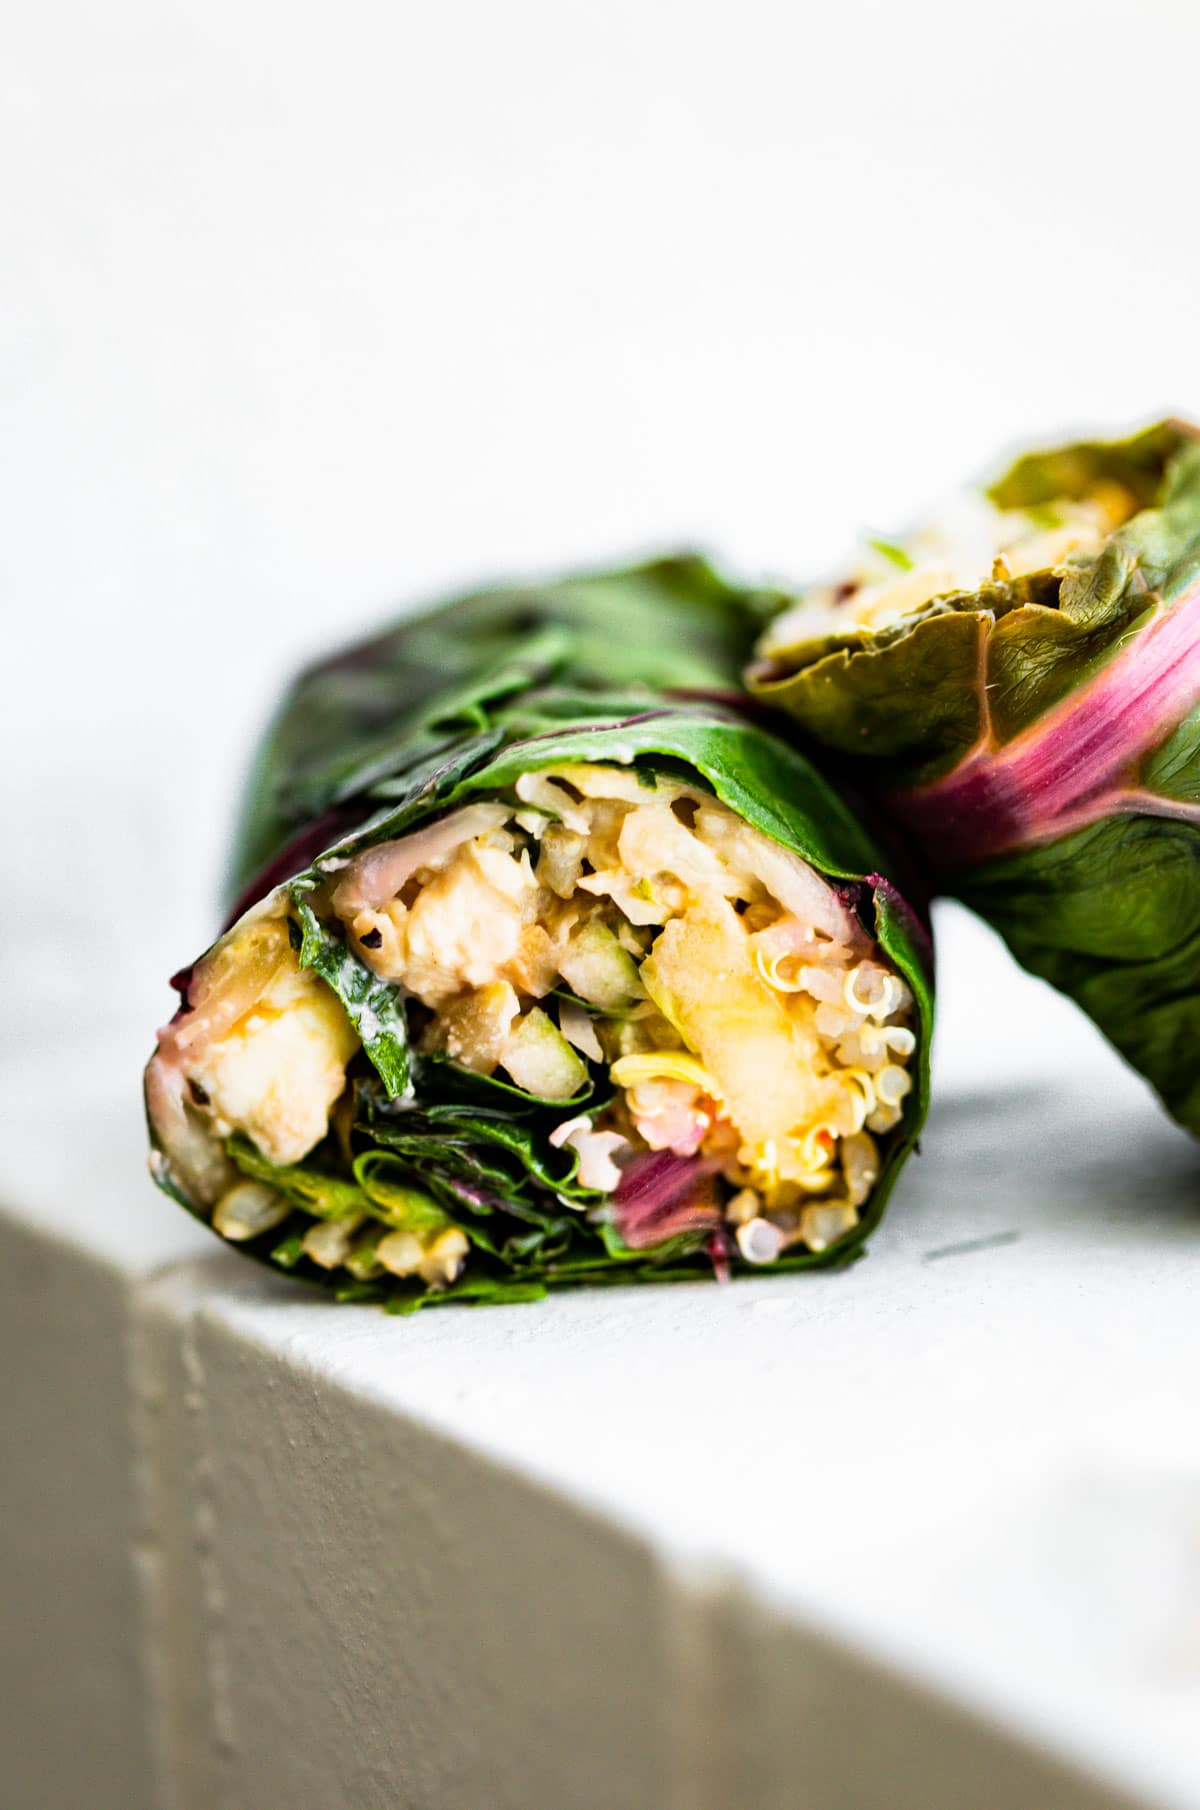 Swiss Chard Salad Wraps With Apple Slaw Vegan Option Cotter Crunch